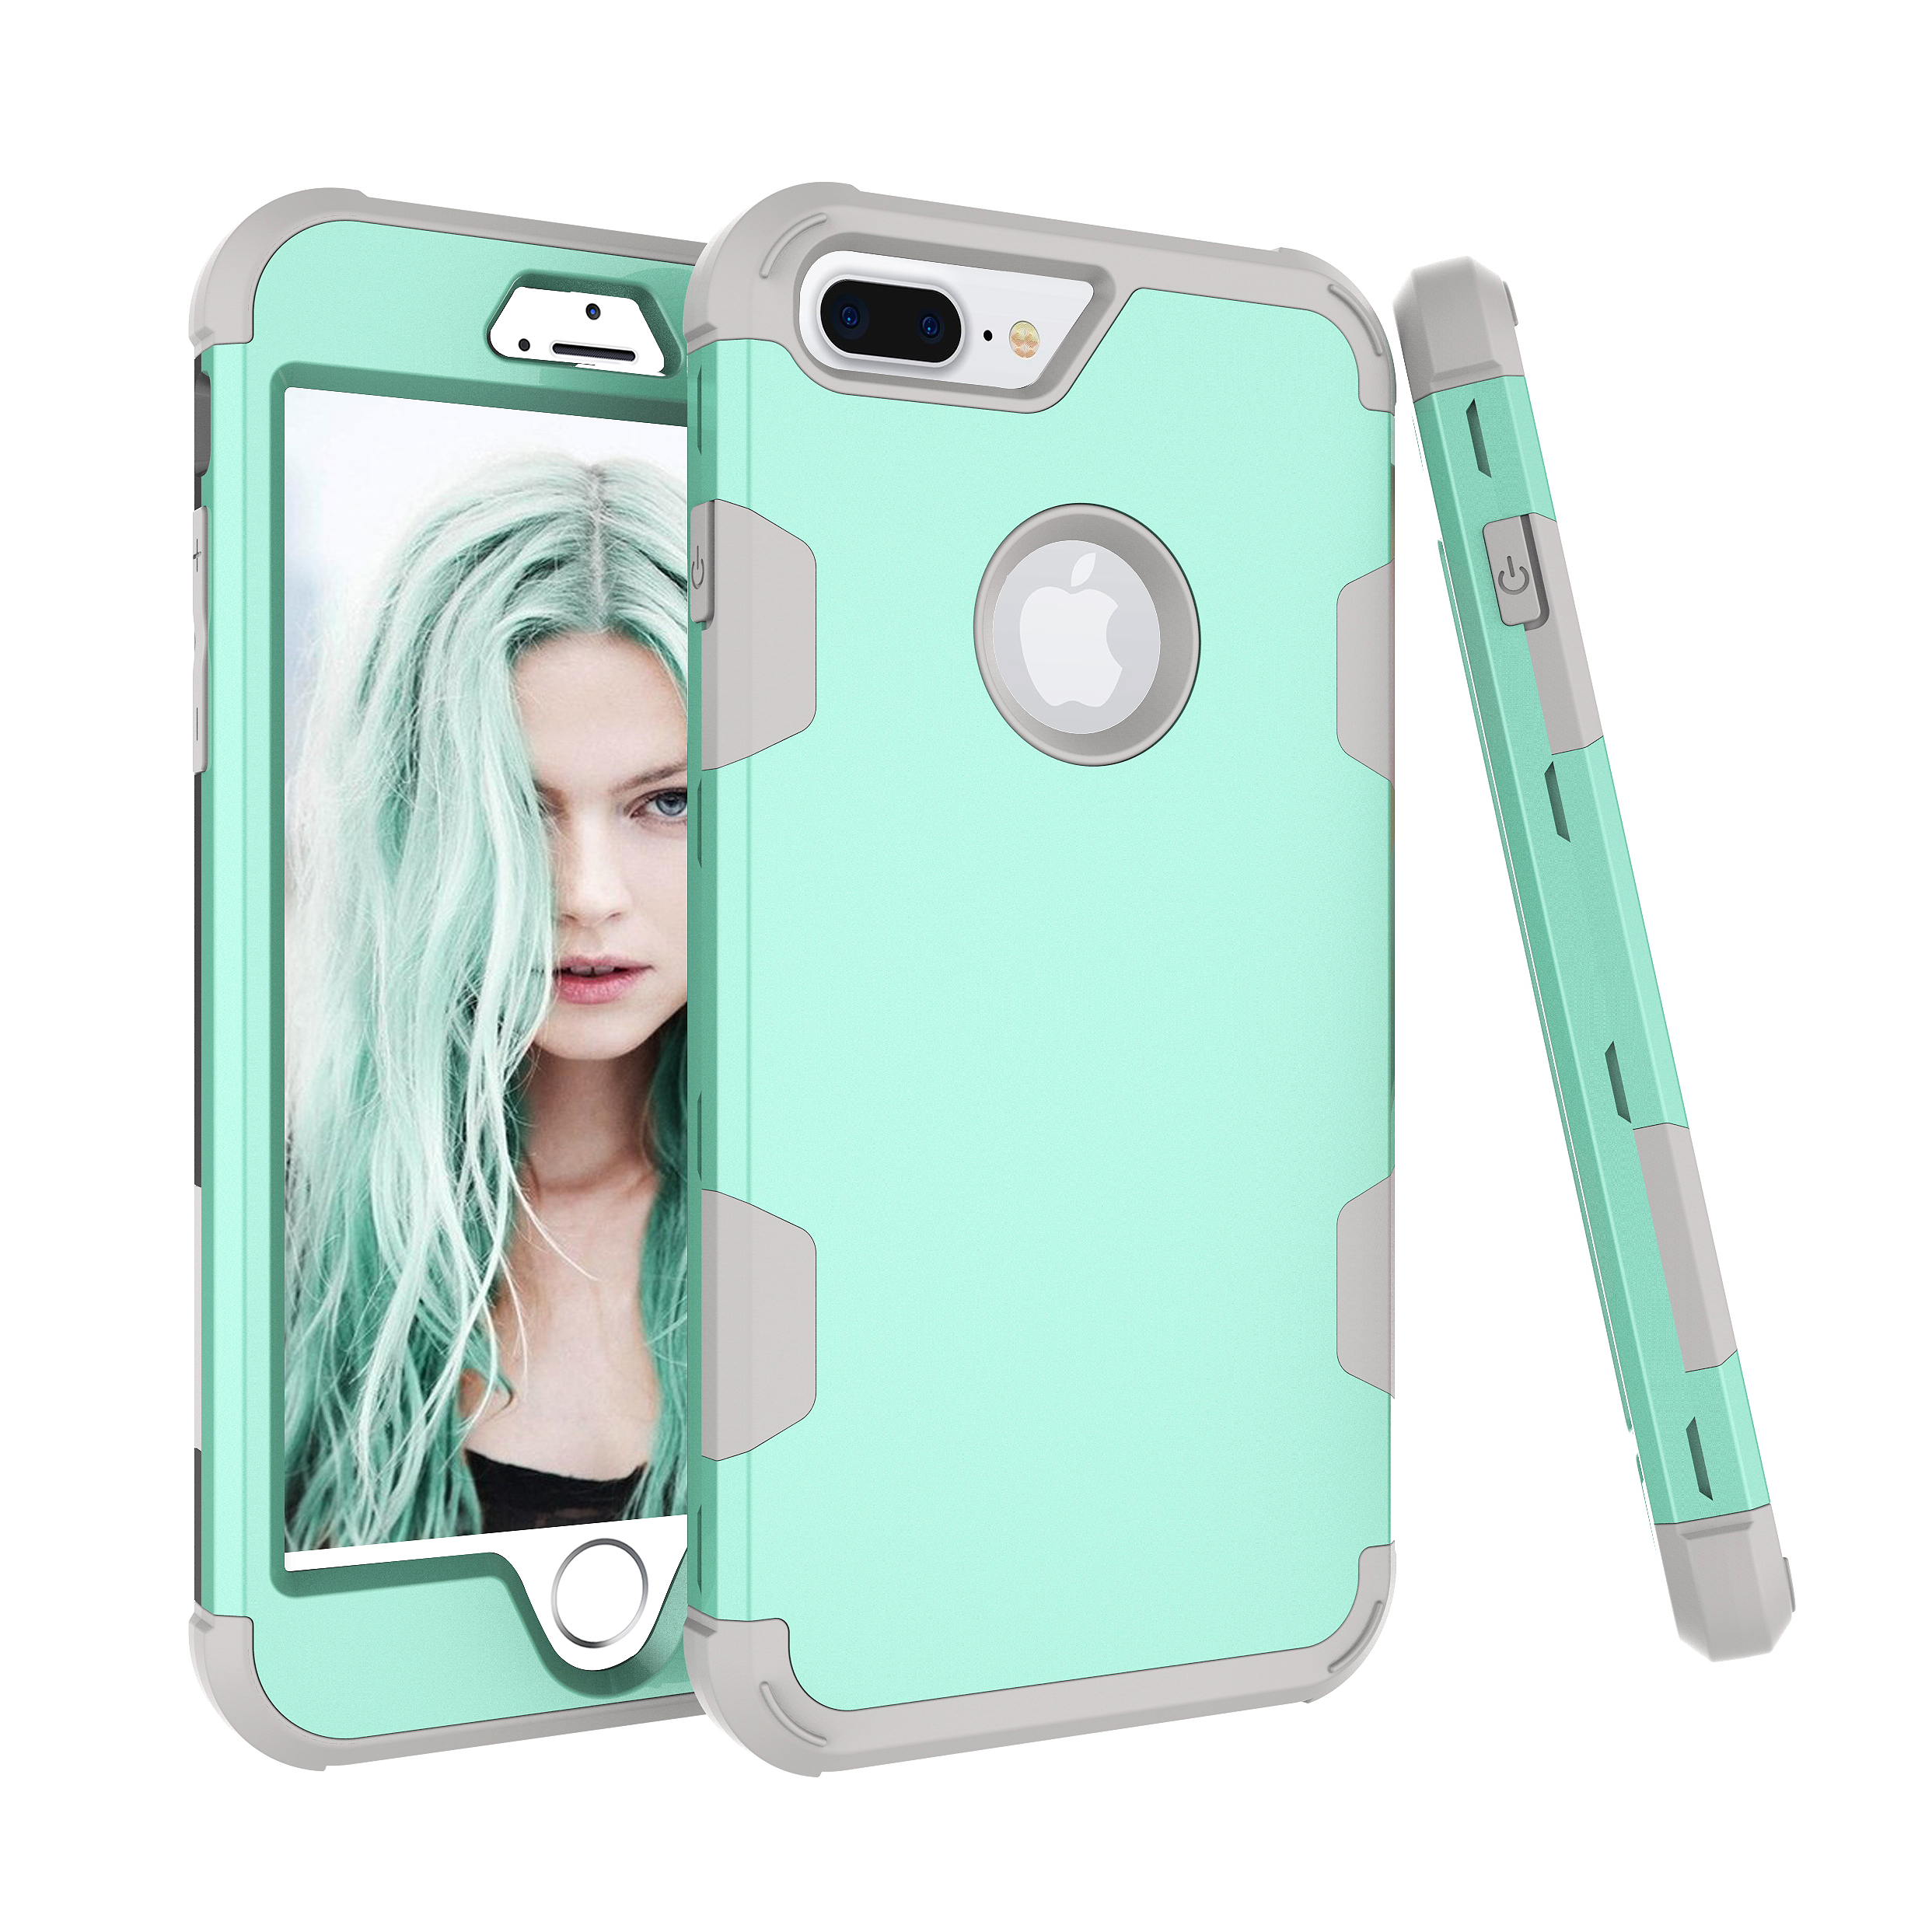 For iPhone 7 plus PC+ Silicone 2 in 1 Hit Color Tri-proof Shockproof Dustproof Anti-fall Protective Cover Back Case Mint green + gray